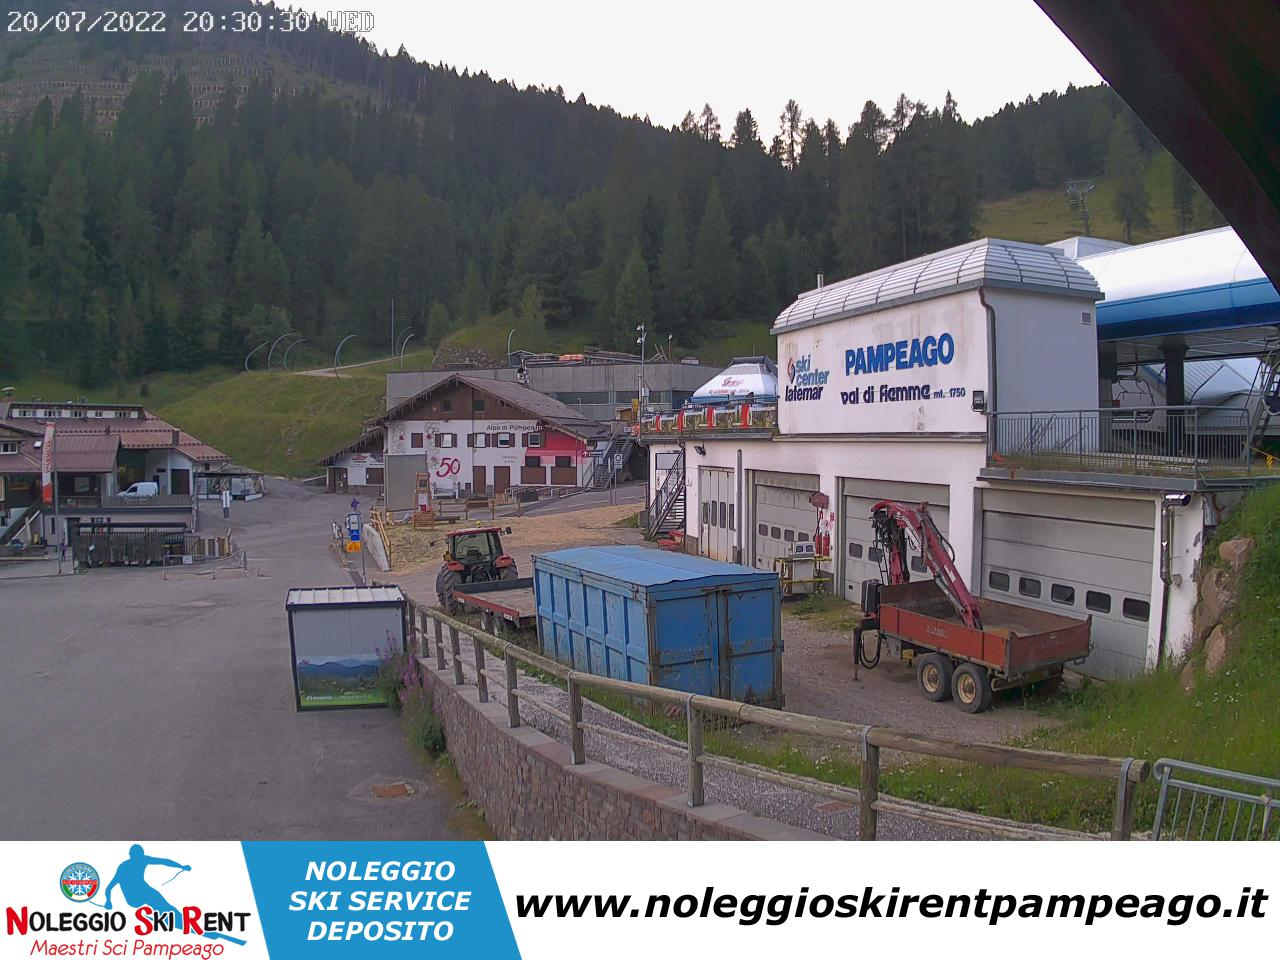 Webcam Alpe di Pampeago Noleggio Ski Rent